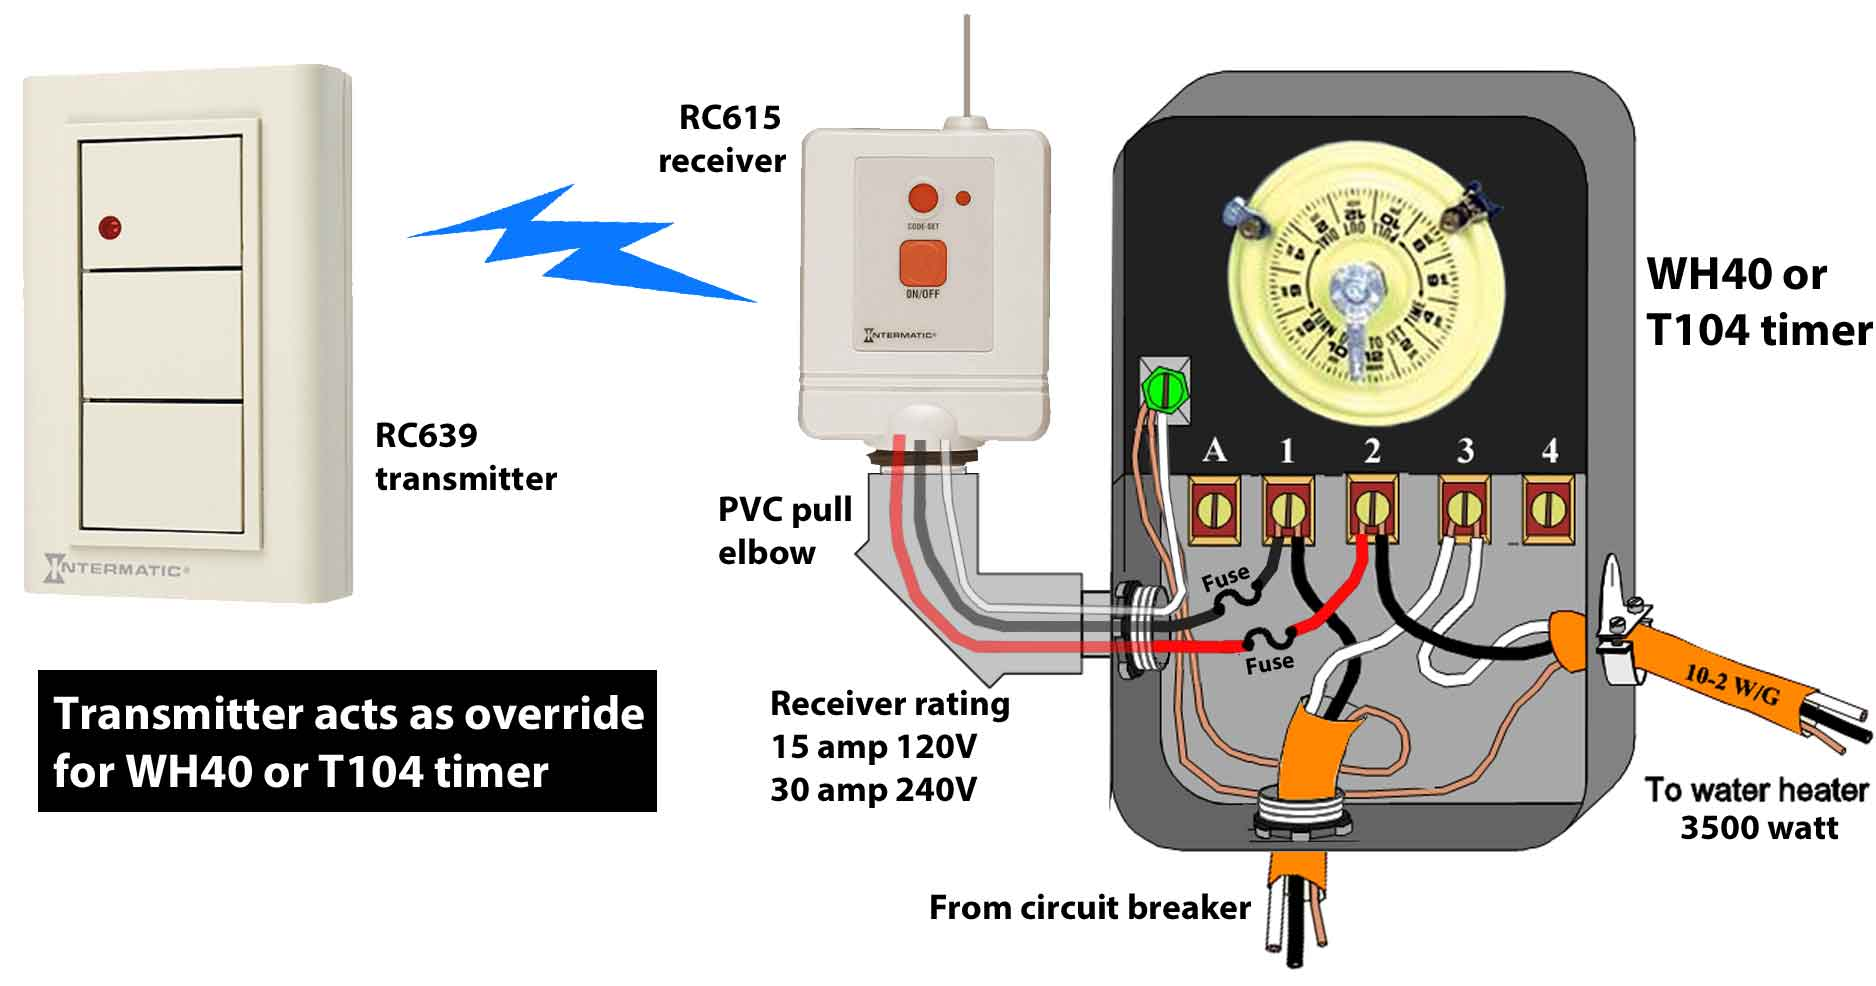 Intermatic remote RC control how to wire wh40 water heater timer timer switch wiring diagram at soozxer.org